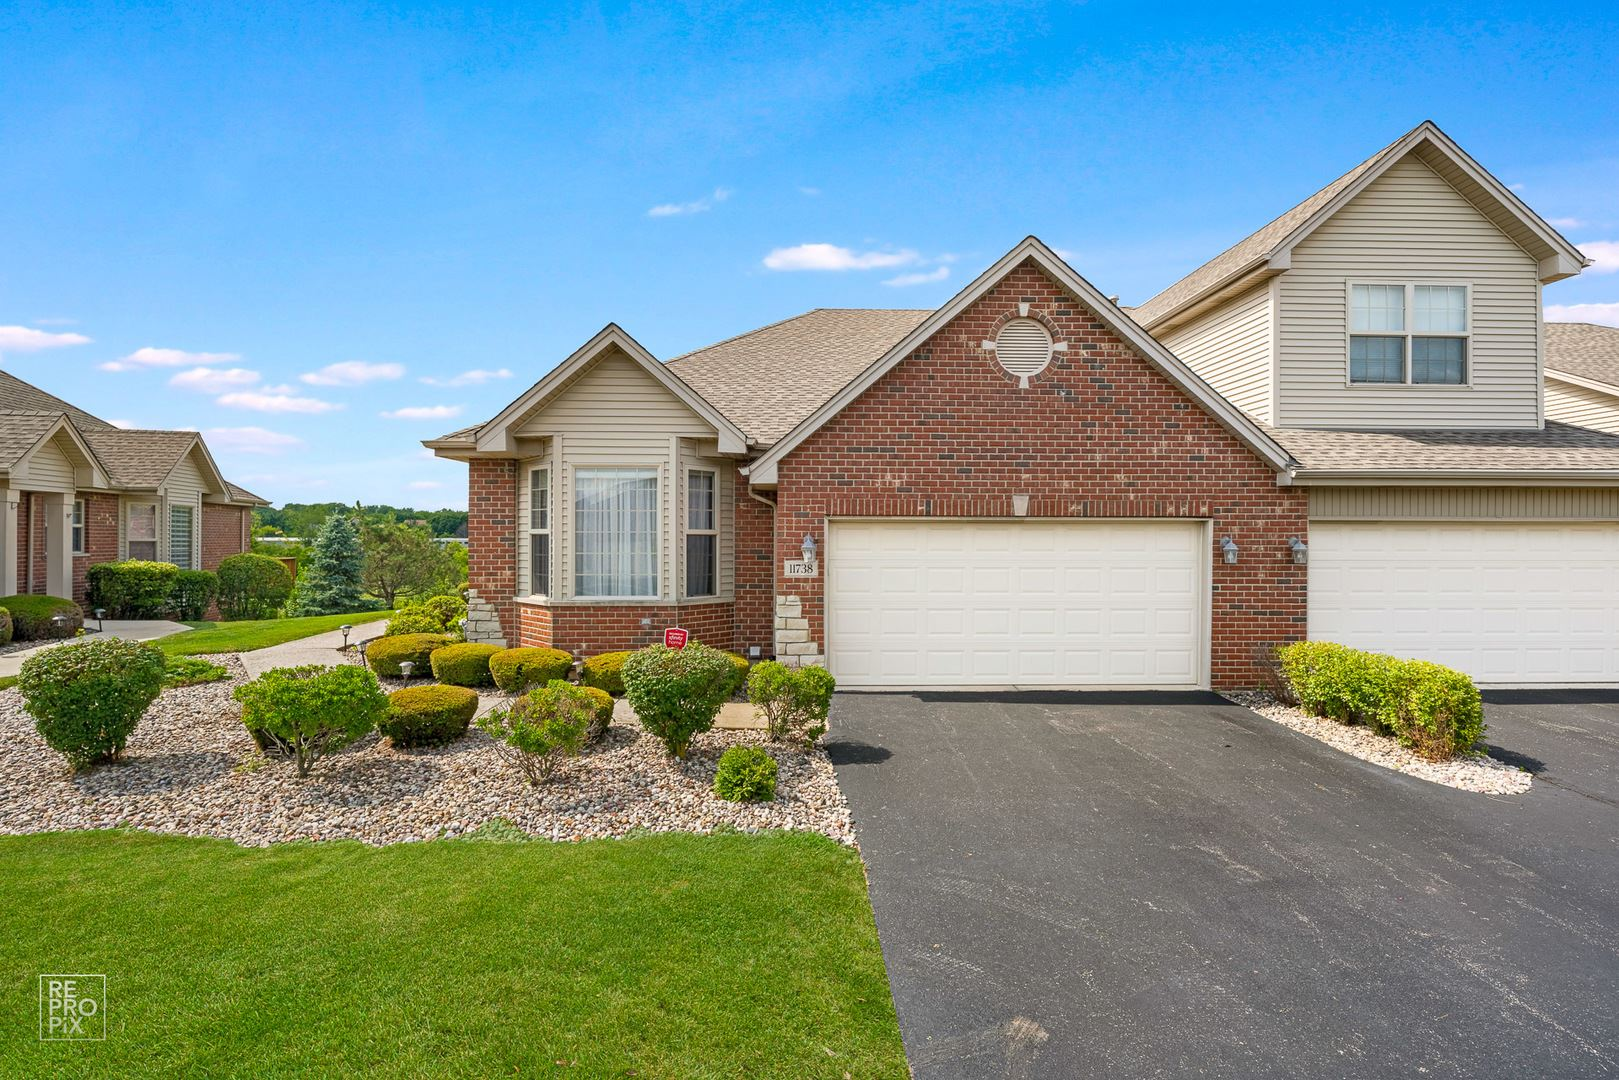 11738 Imperial Lane, Orland Park, IL 60467 - #: 11195917